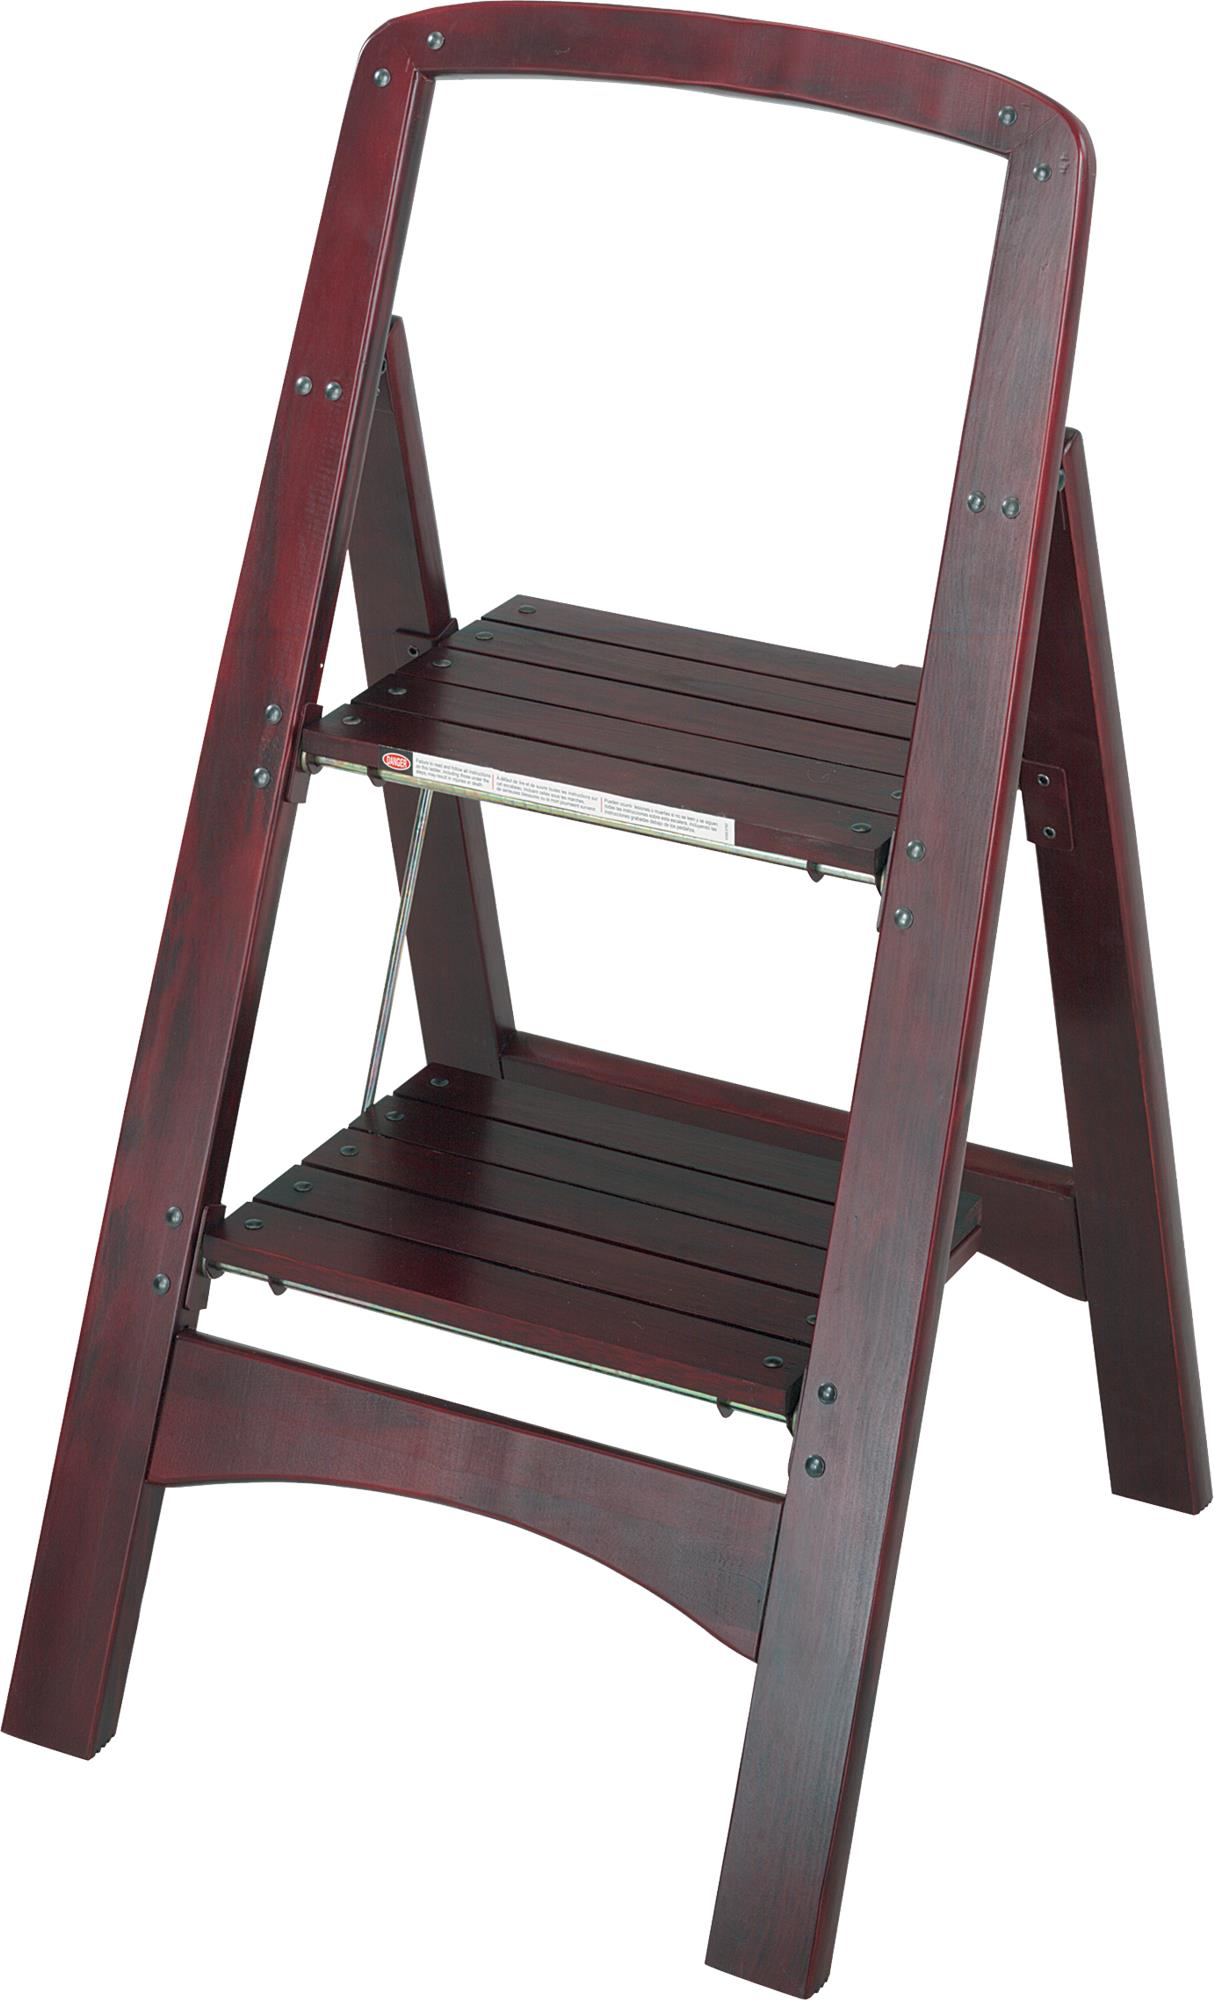 Attirant Cosco Rockford Series Two Step Stool, Mahogany   Walmart.com